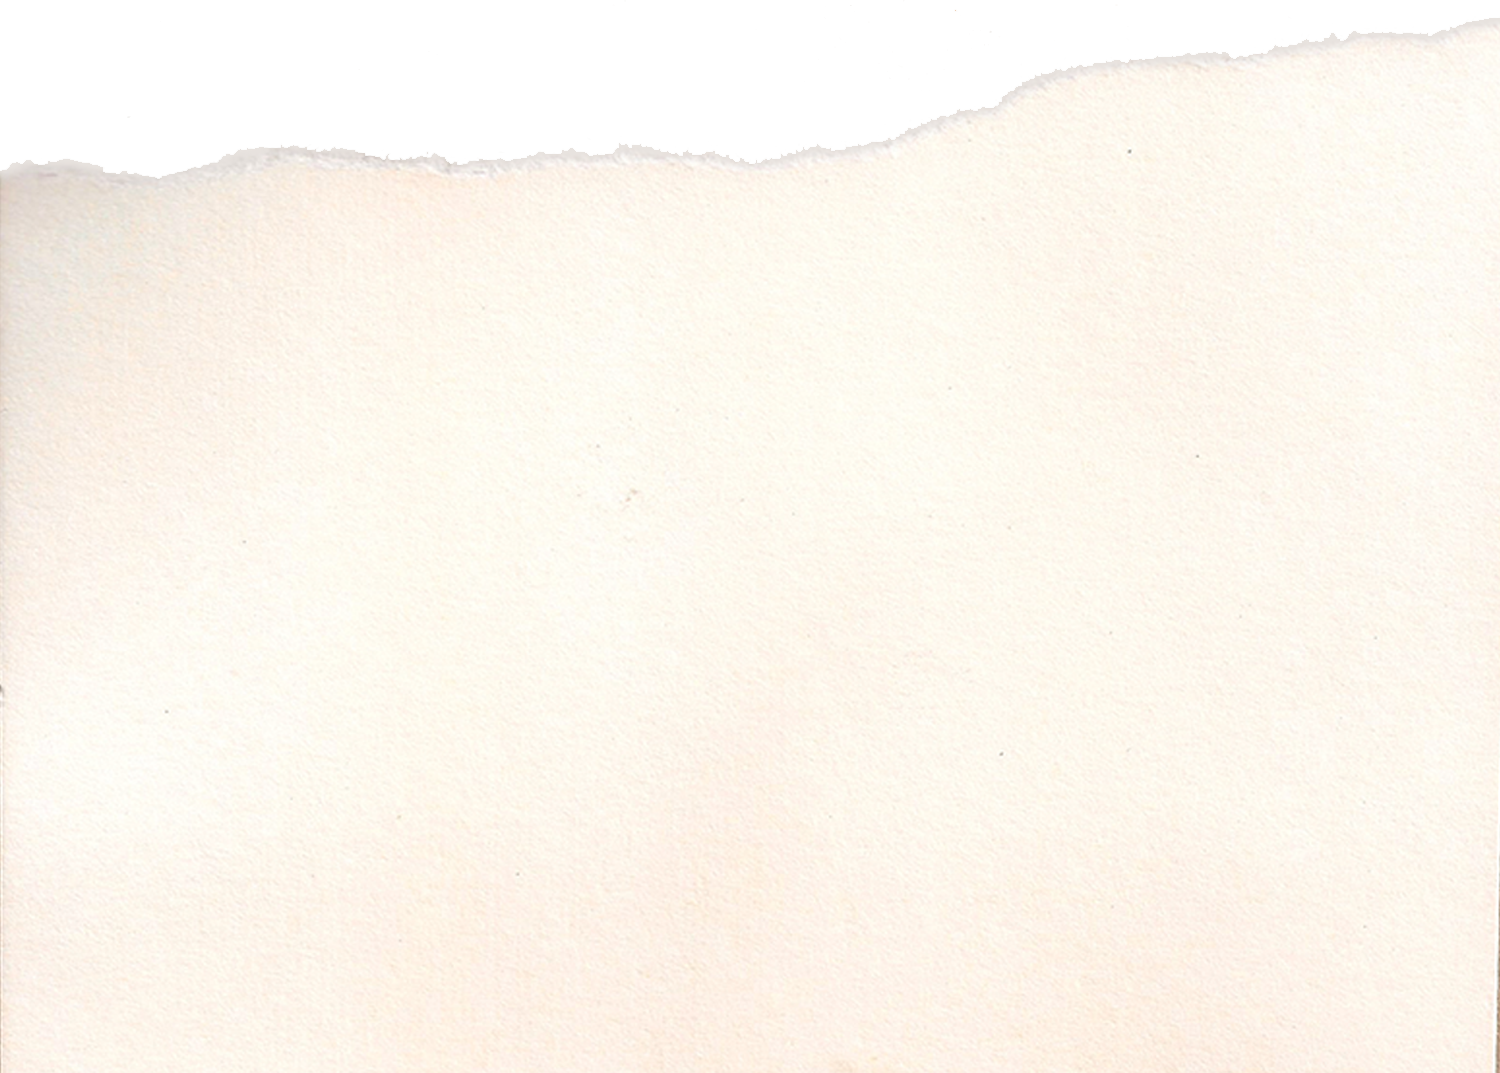 canva  white card stock paper with one ripped edge